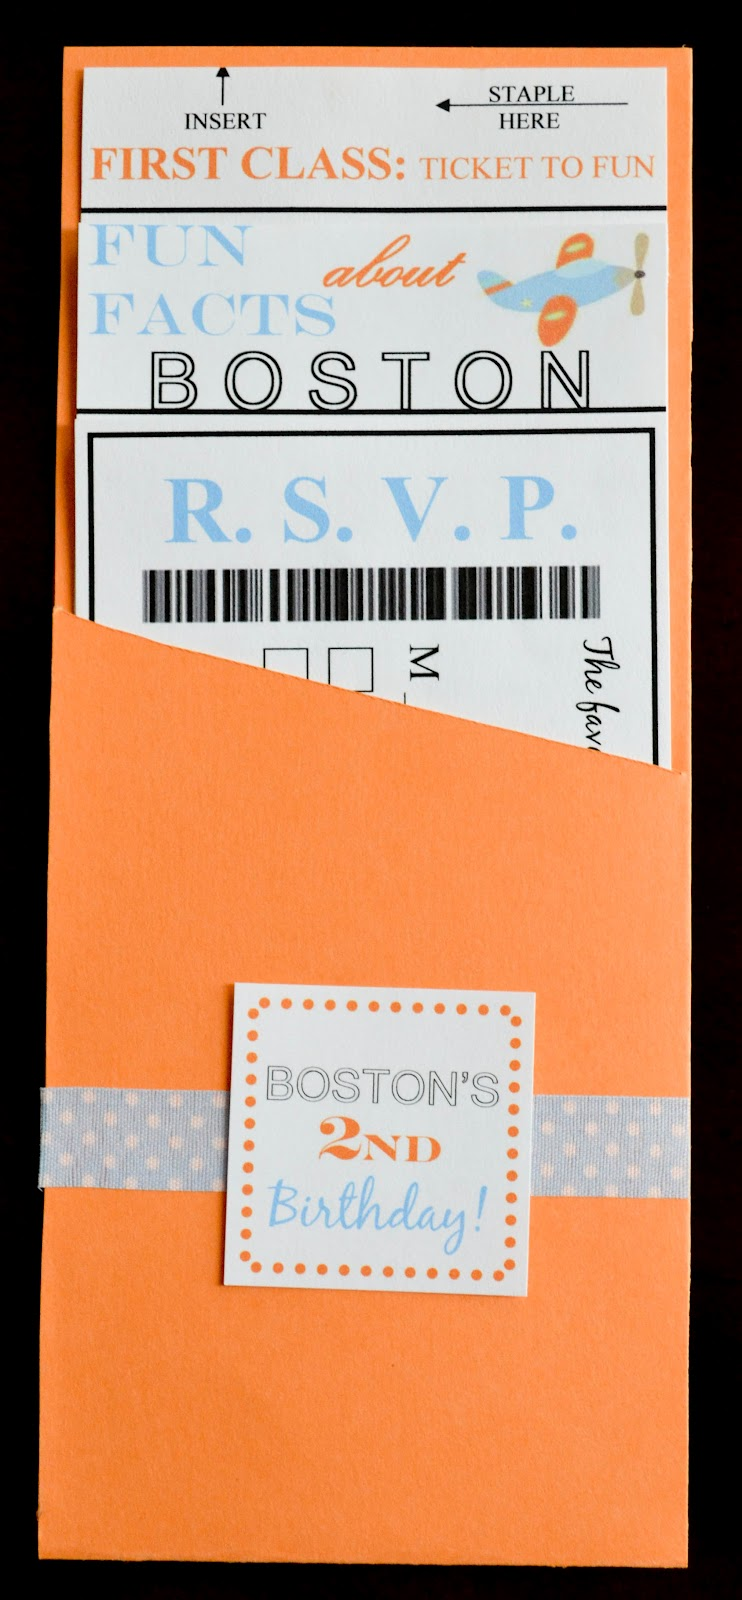 Beautiful Our Love and Our Blessing: Homemade Invitations: Boarding Pass Style MA03